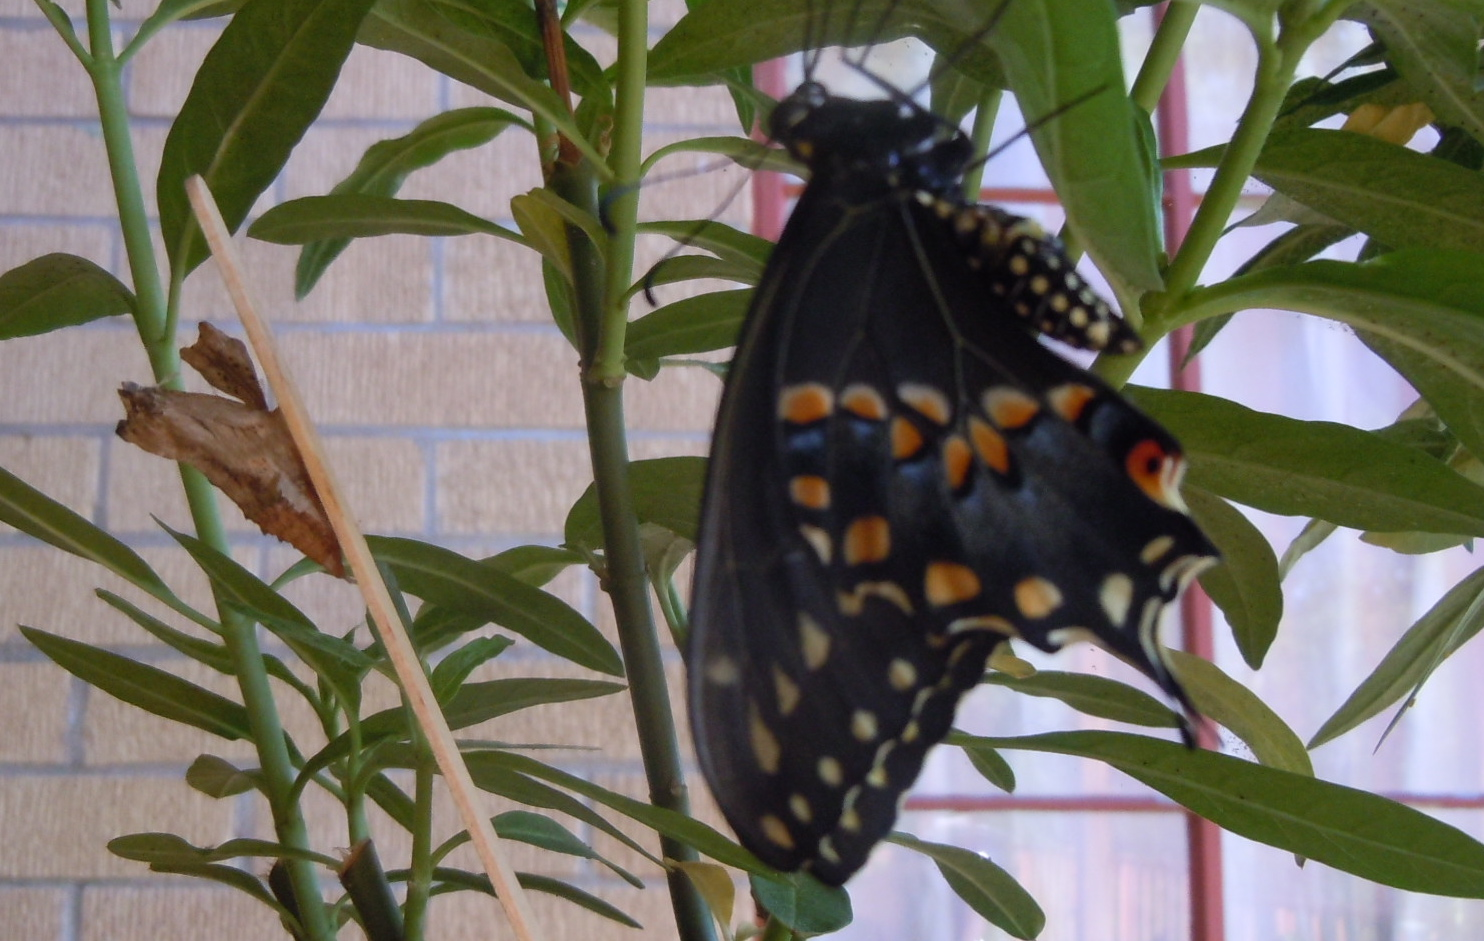 Eastern Swallowtail Hatches in June after forming chrysalis in October the prior year